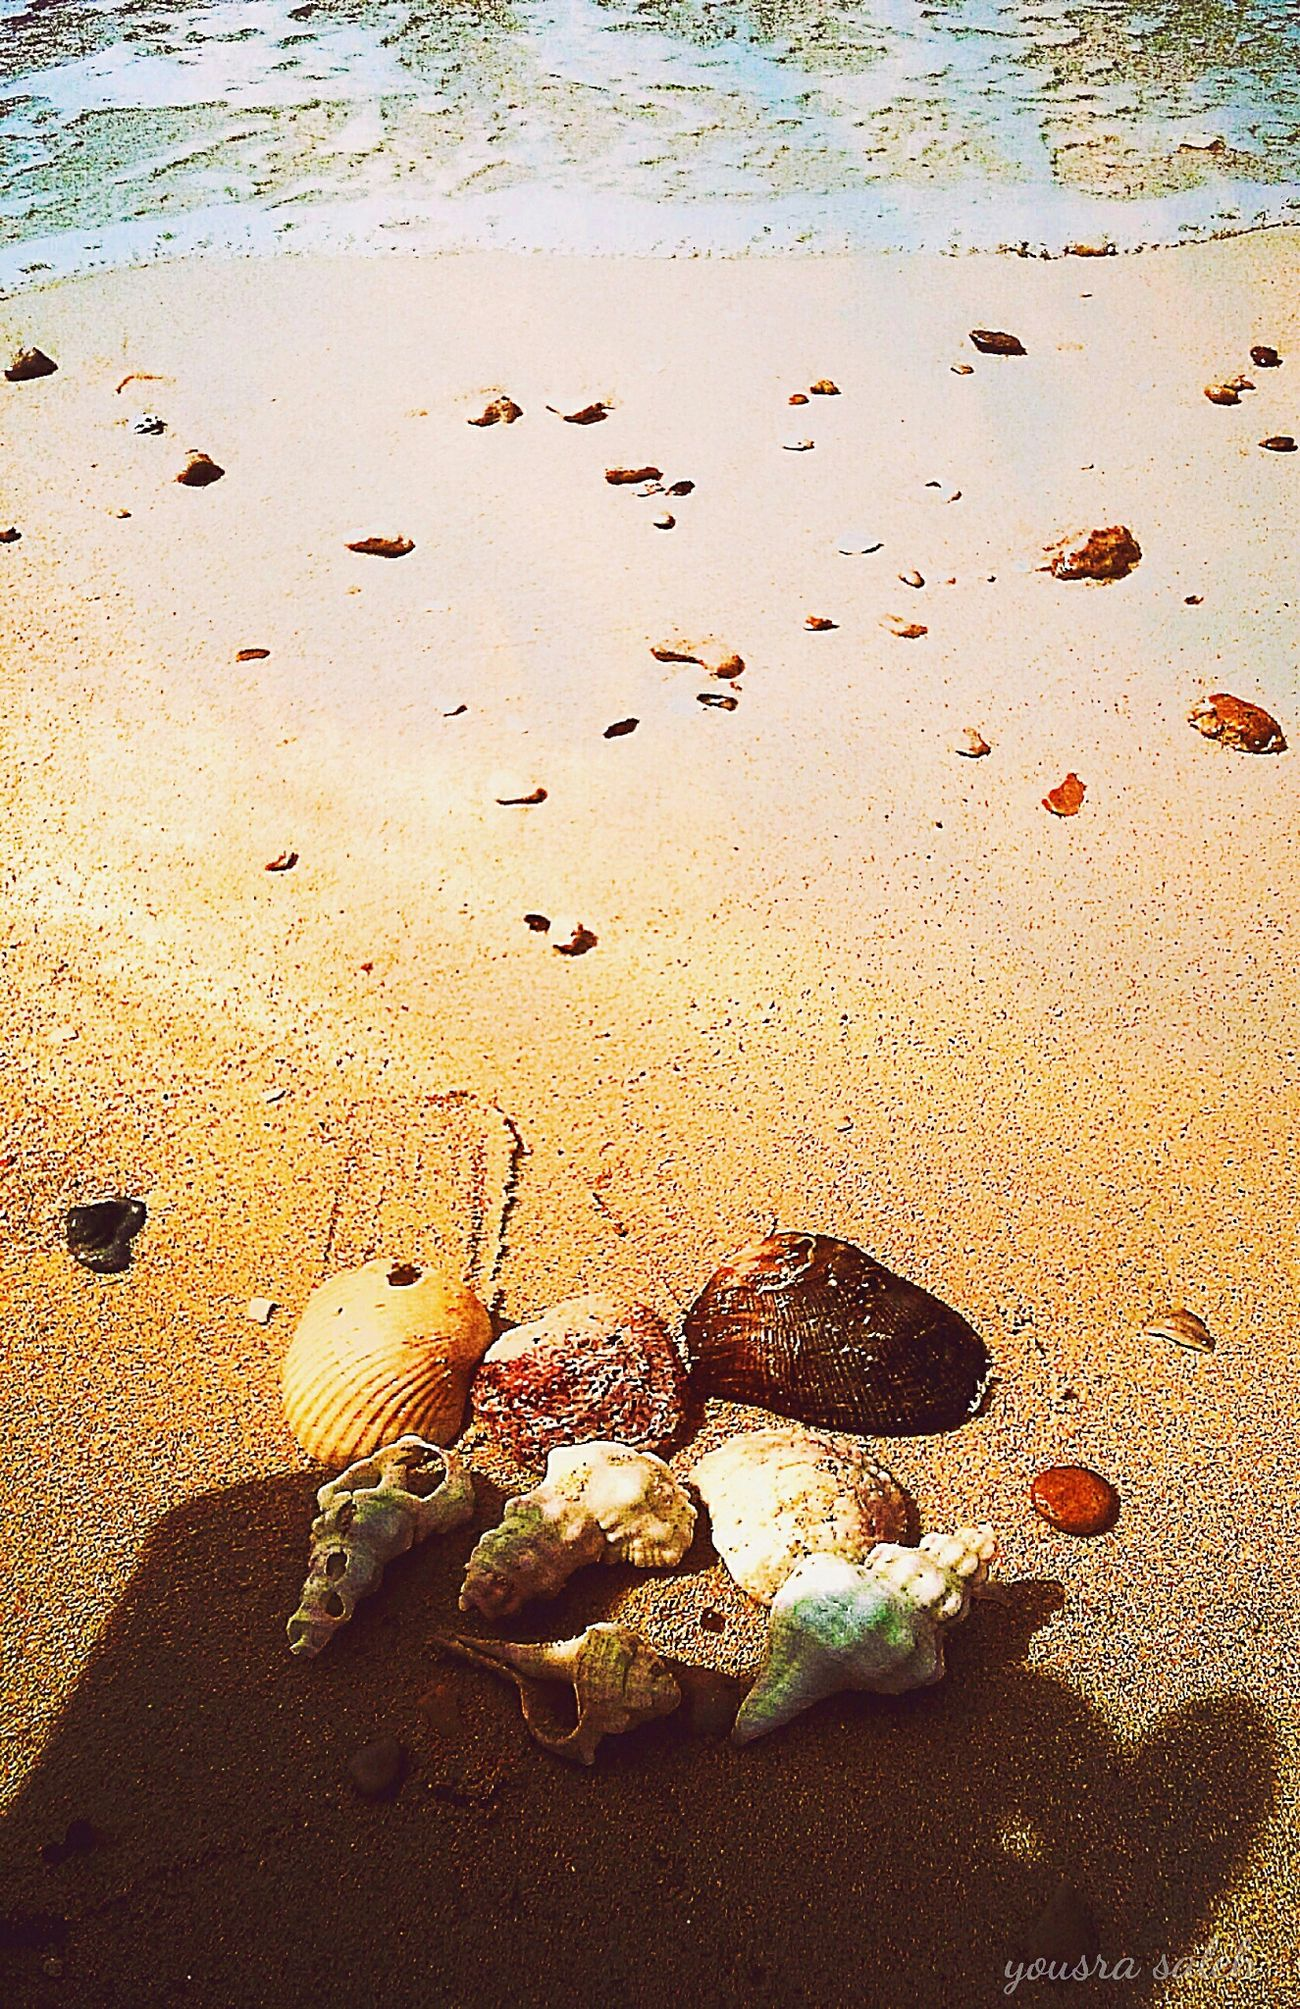 Seashells Stones And Shells Stones Stones And Pebbles Seashell Fossils Golden Sand Sand Seashell Beach Summer Seashell Collection Beach Stones & Water Seashells Picking Nature Colorful Nature Nature Photography Nature Beauty Nature_collection Naturelovers Beauty In Nature Relaxing Relaxing View Sunny Day Summer Memories Ras Sudr Egypt Love To Take Photos ❤ Live For The Story